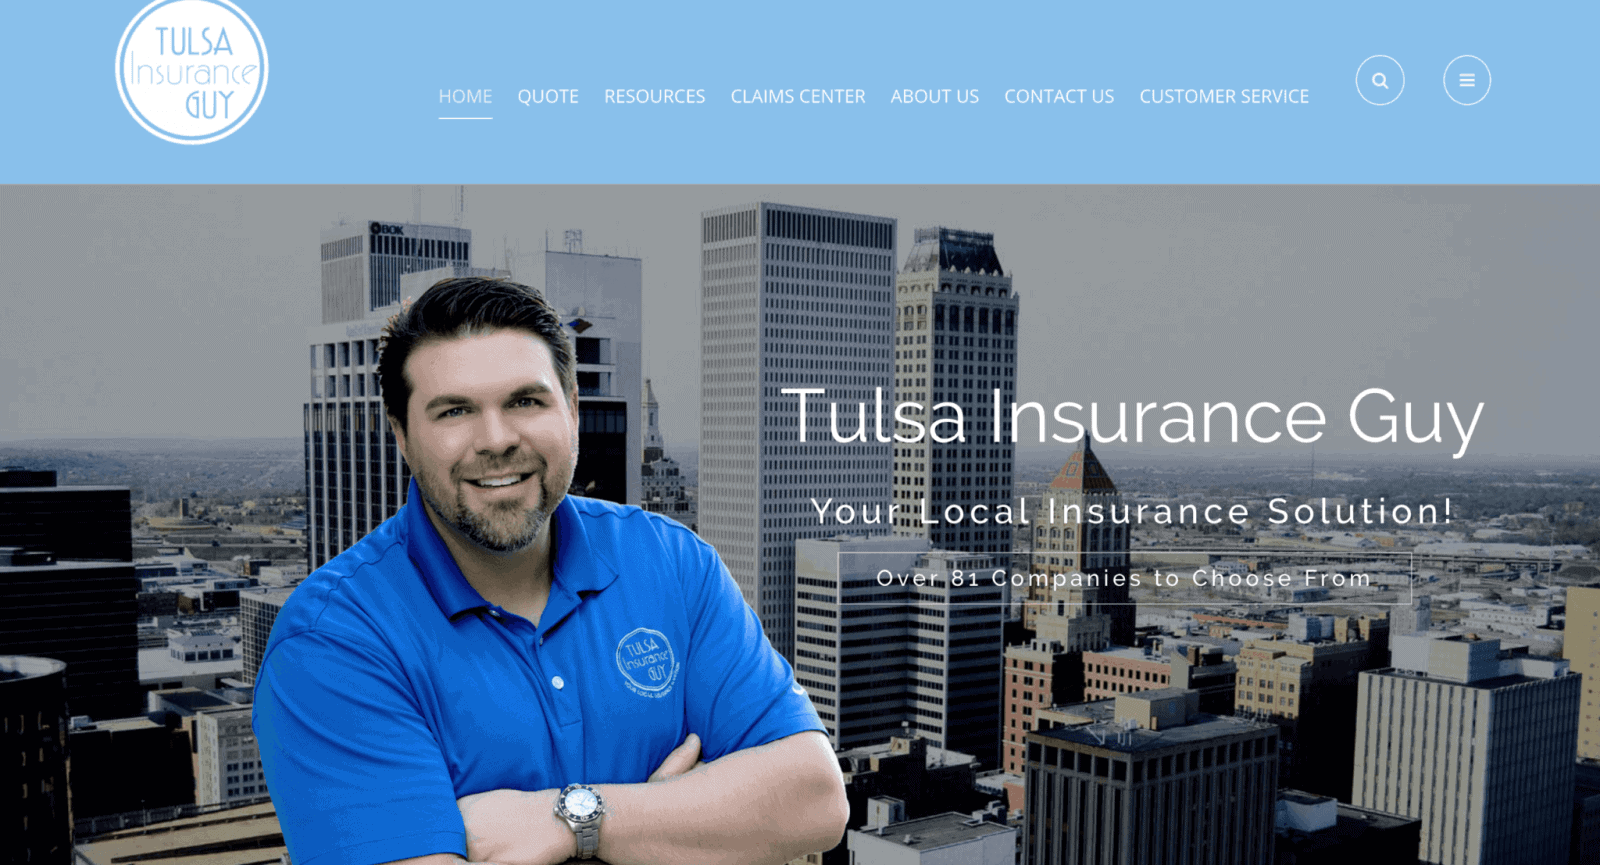 web design tulsa insurance